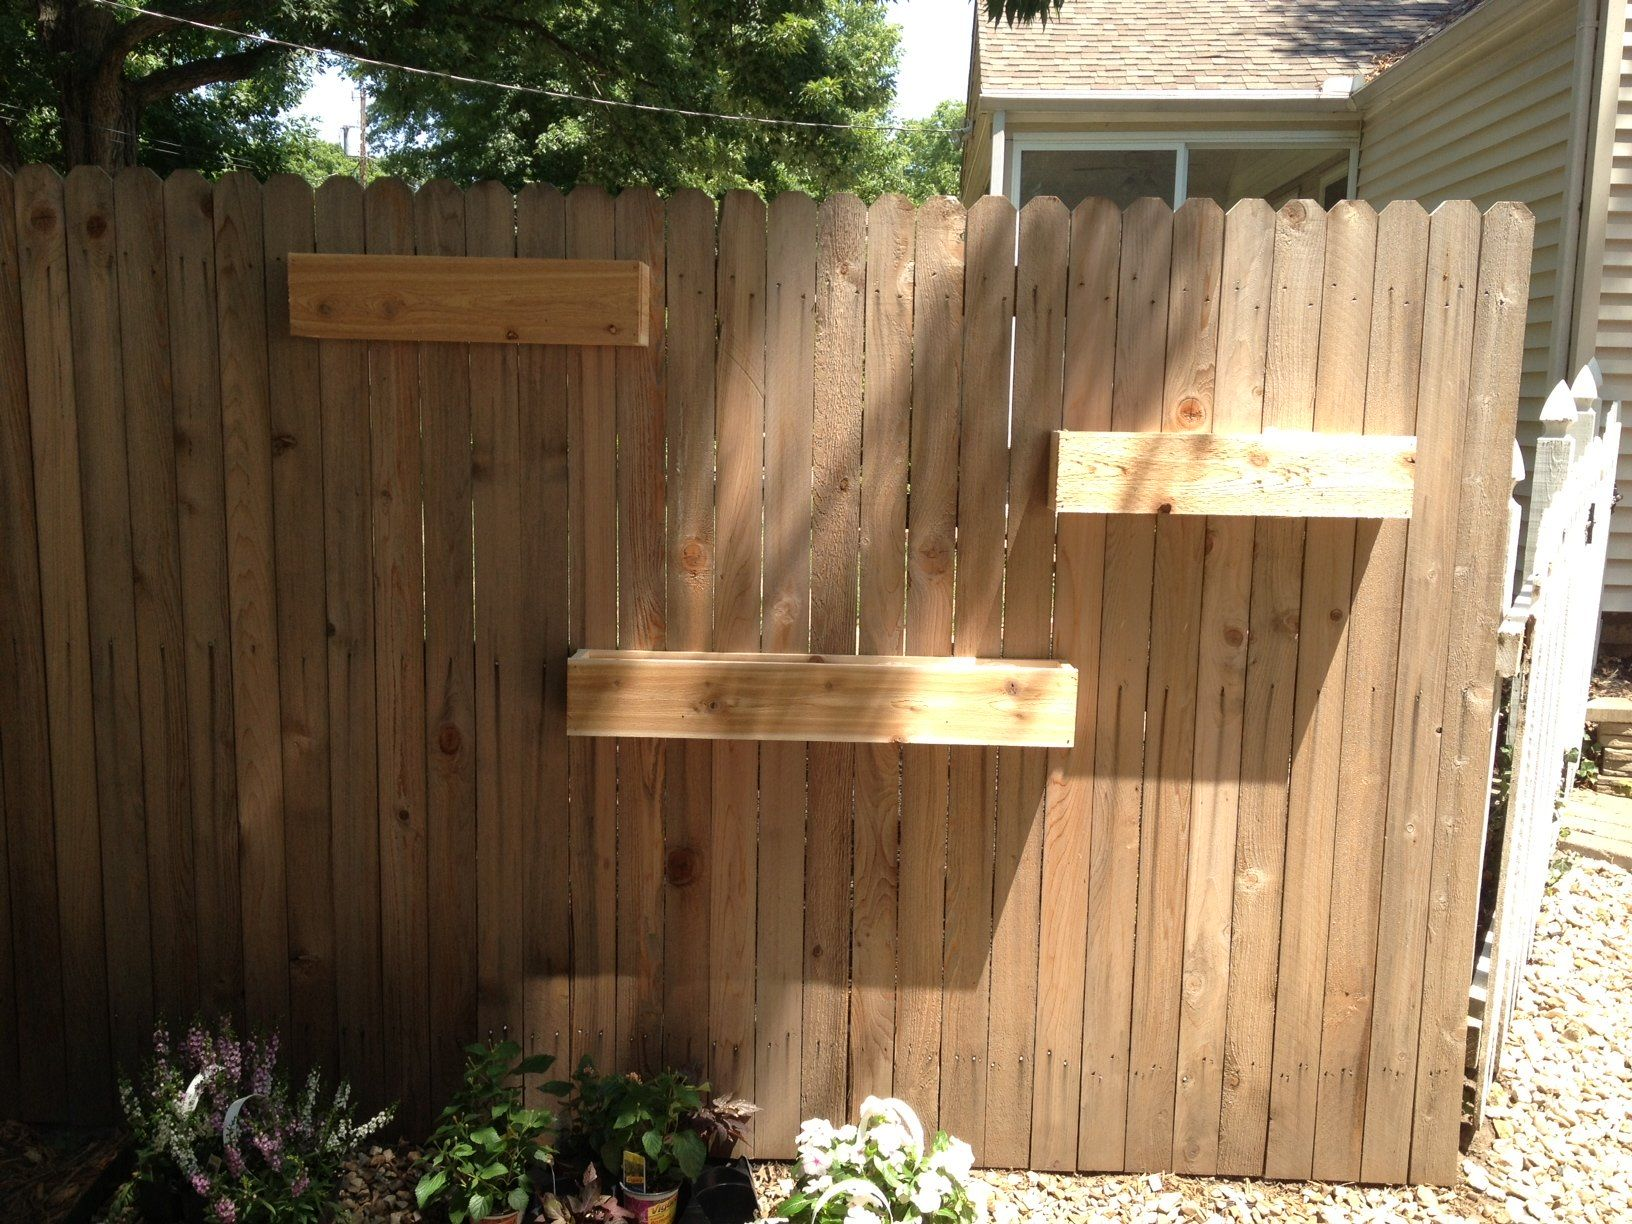 Furniture unfinished diy fence mounted garden planter boxes in the side yard house ideas wood garden box